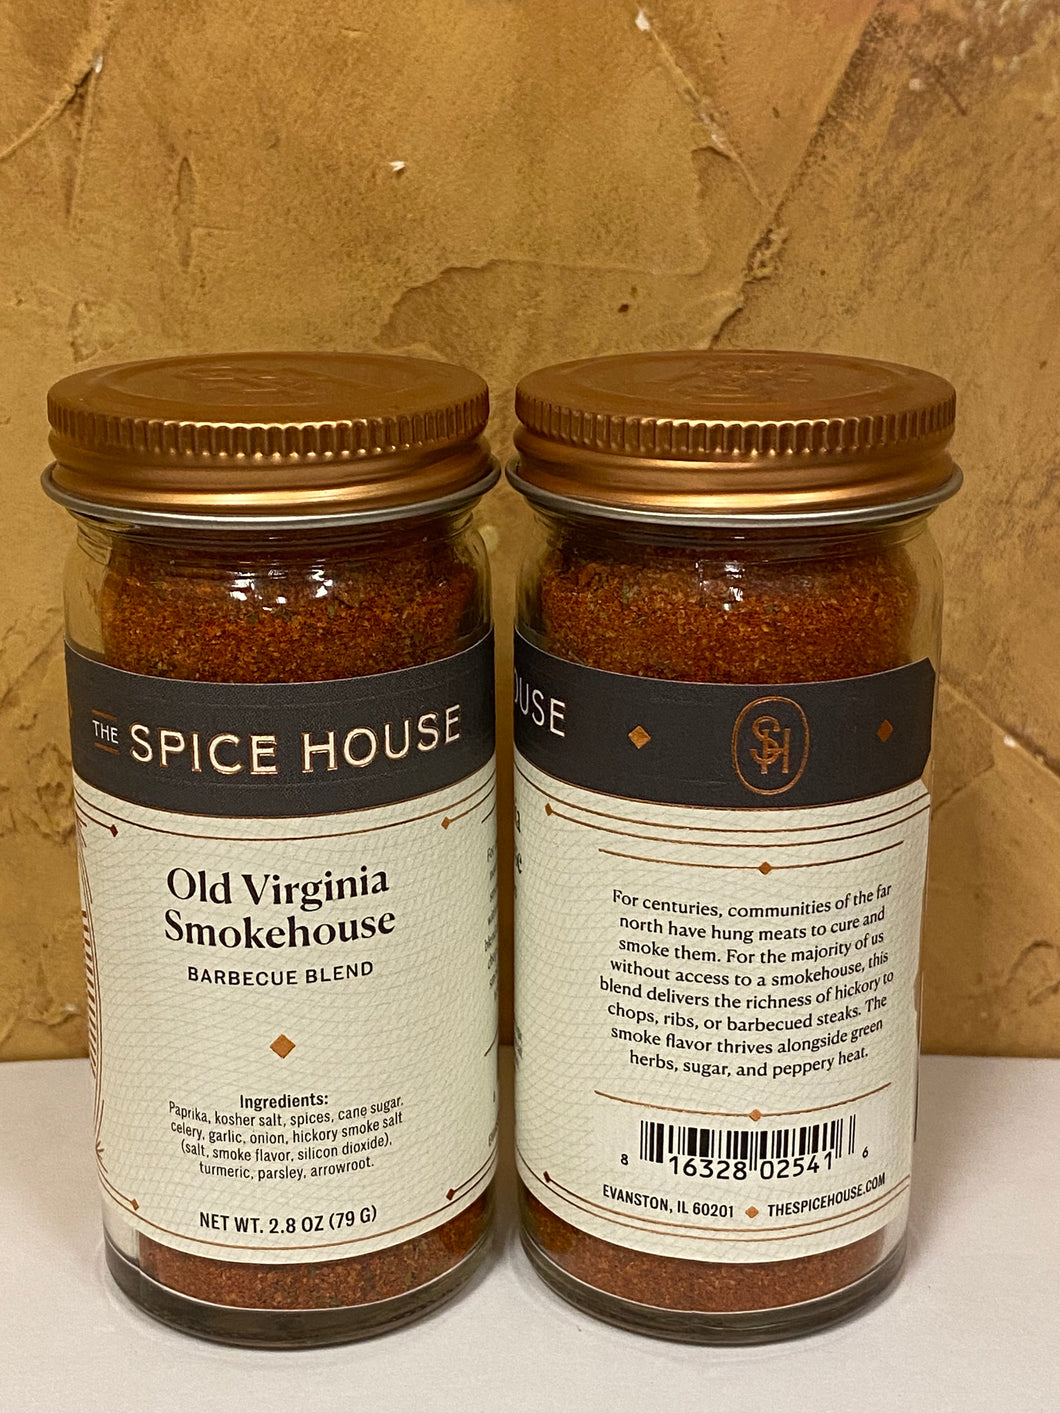 Old Virginia Smokehouse - Barbecue Blend